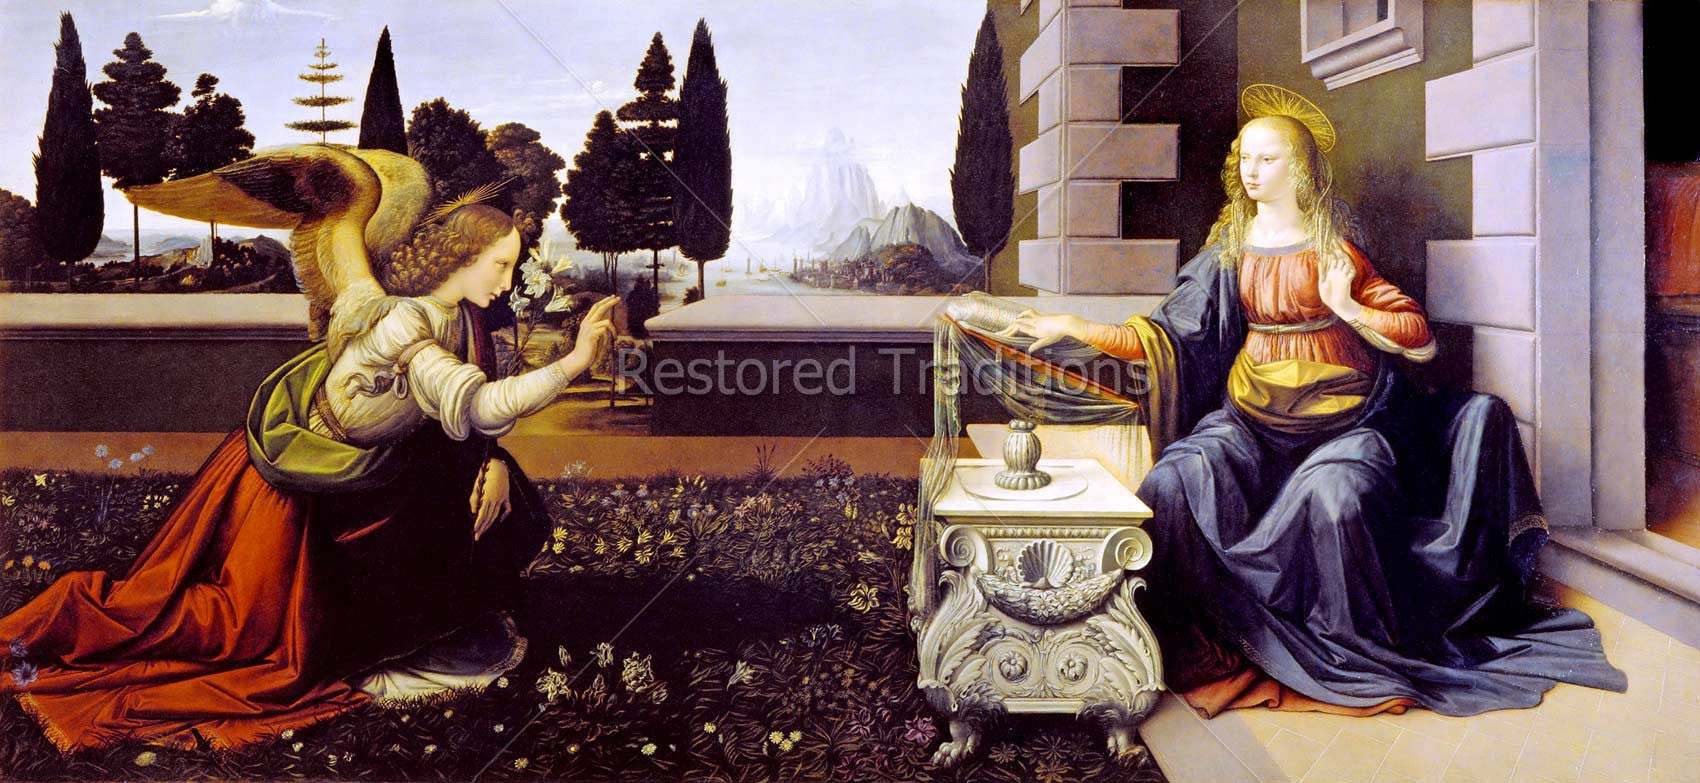 High Resolution Religious Image   The Annunciation, by Da Vinci - Restored  Traditions